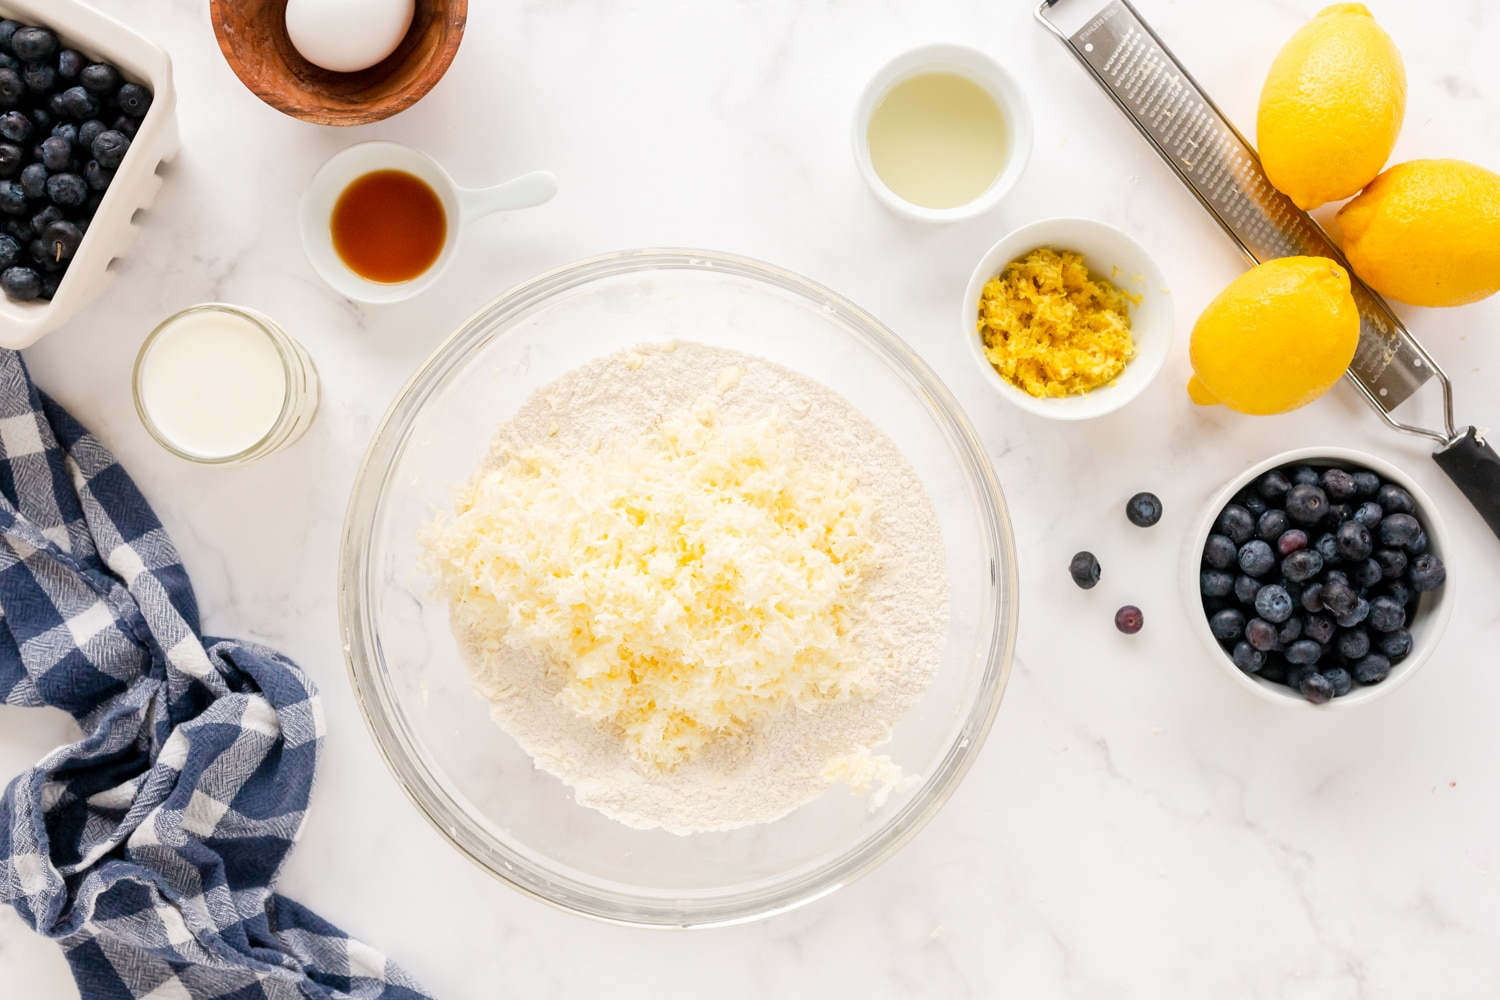 grated butter in bowl